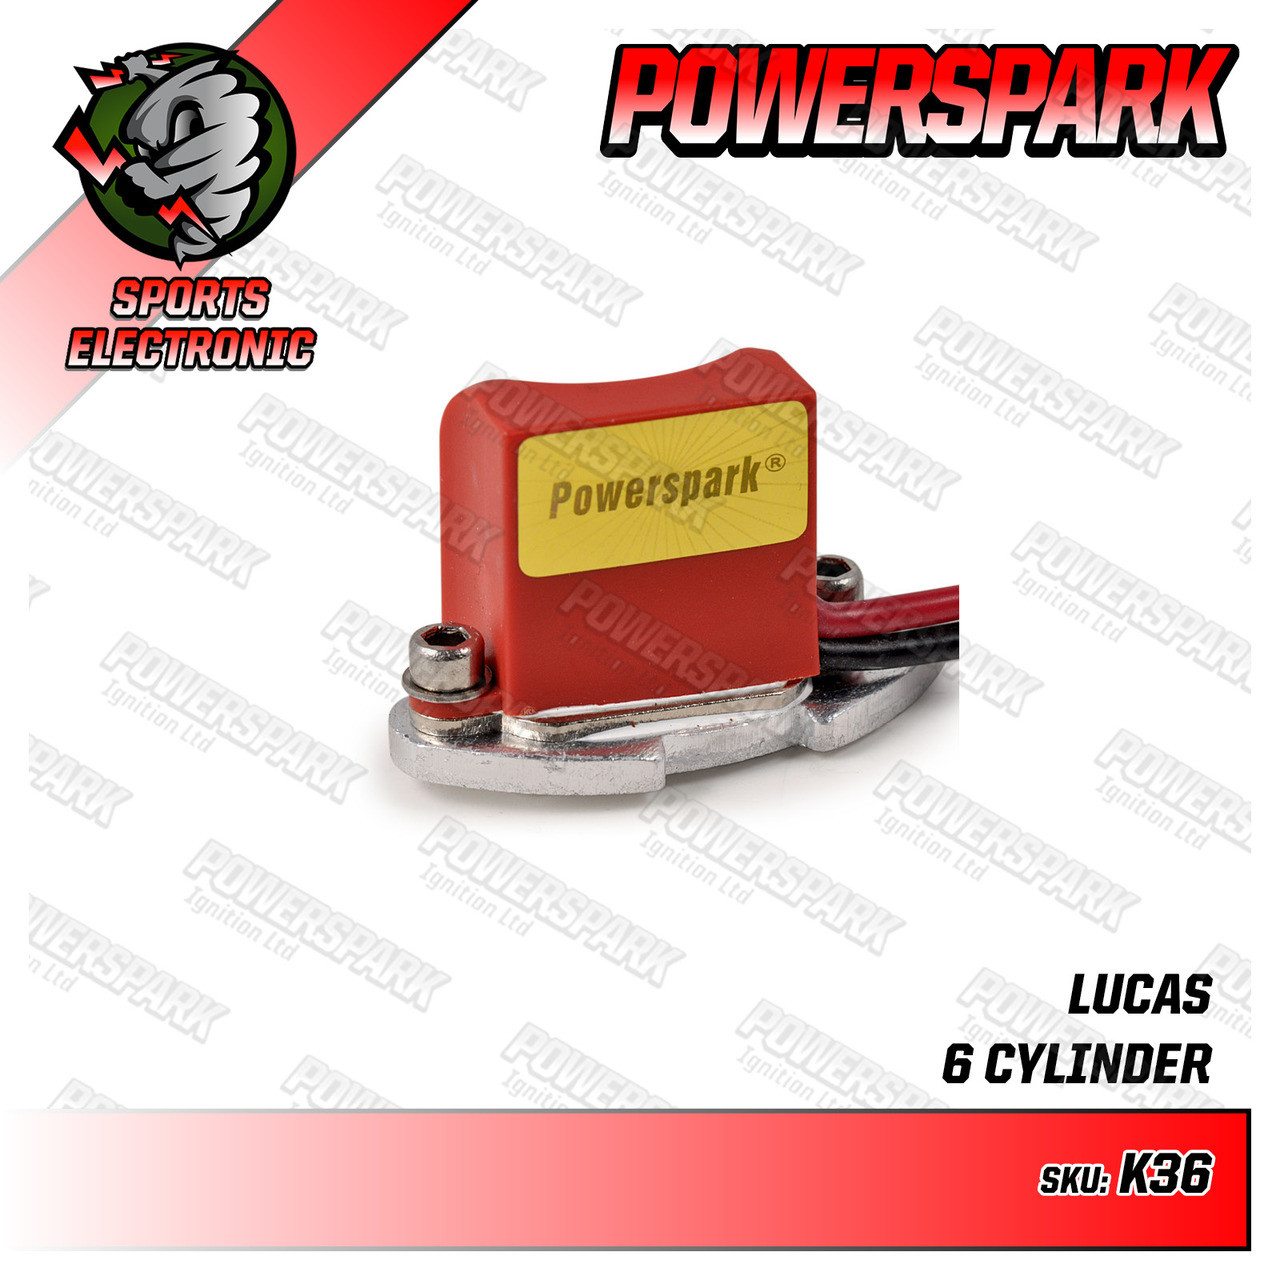 K36 - Powerspark Electronic Ignition Kit for Lucas DX6A Non Vac 6 Cyl Distributor